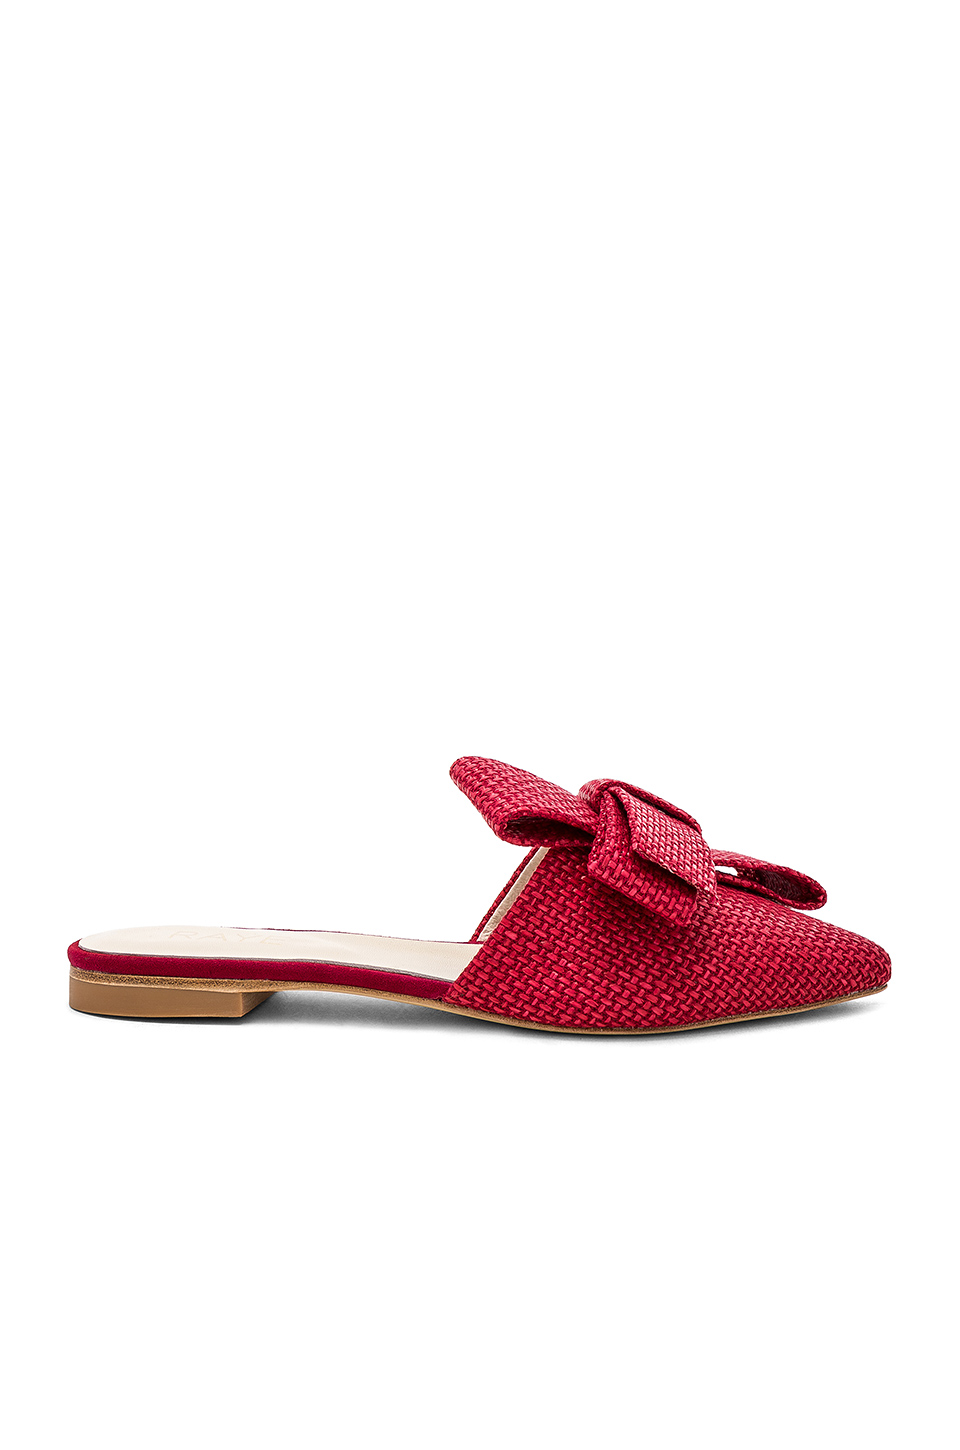 RAYE Vicky Flat in Red